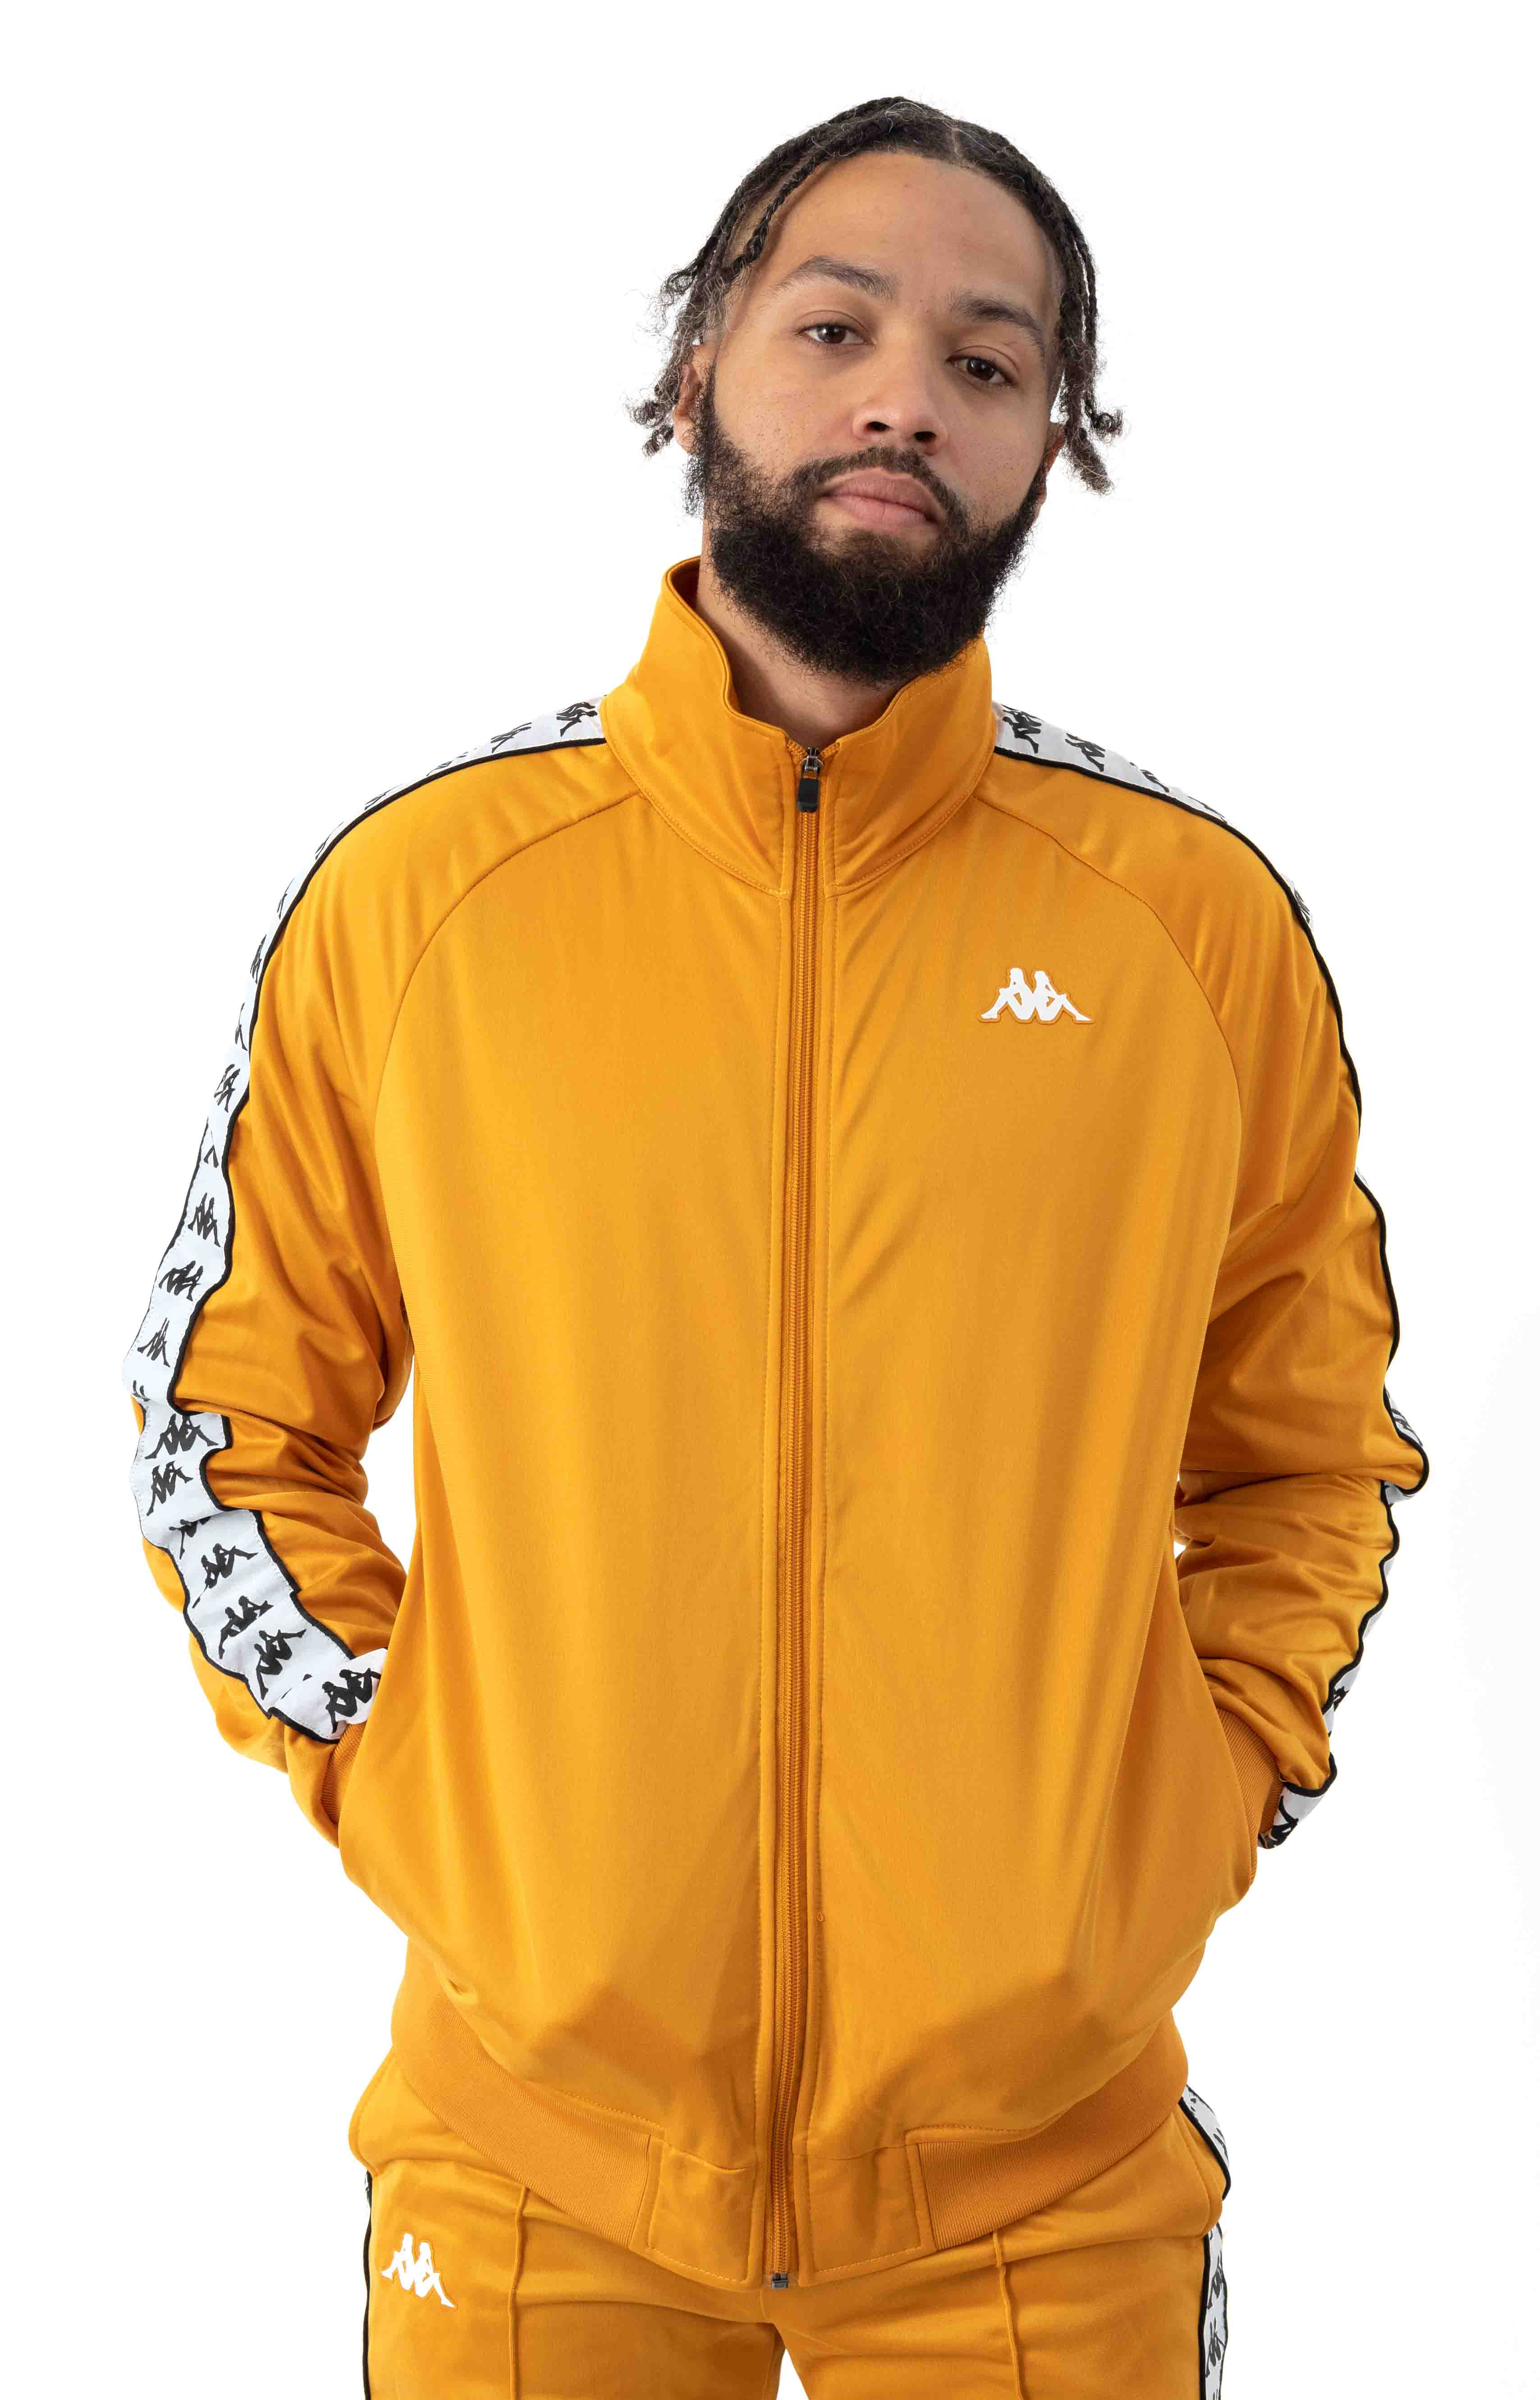 222 Banda Anniston Track Jacket - Yellow Ochre/White